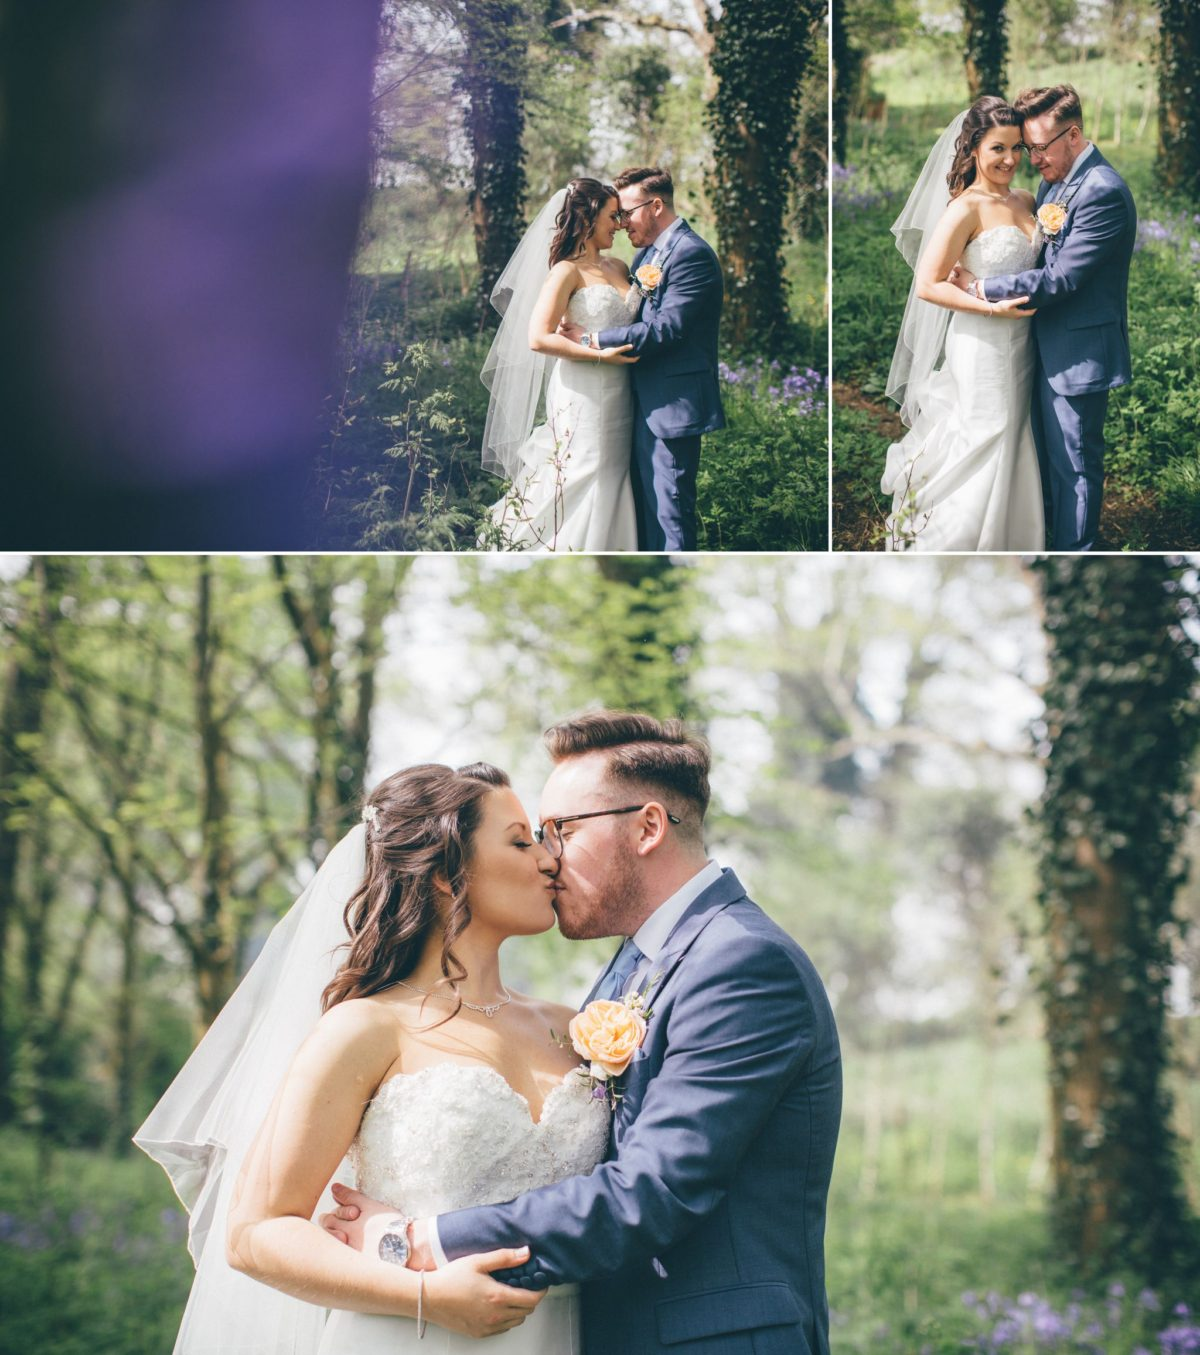 cripps_barn_gloucesterhsire_welsh_wedding_photographer_rachel_lambert_photography_jordan_amy_ 93